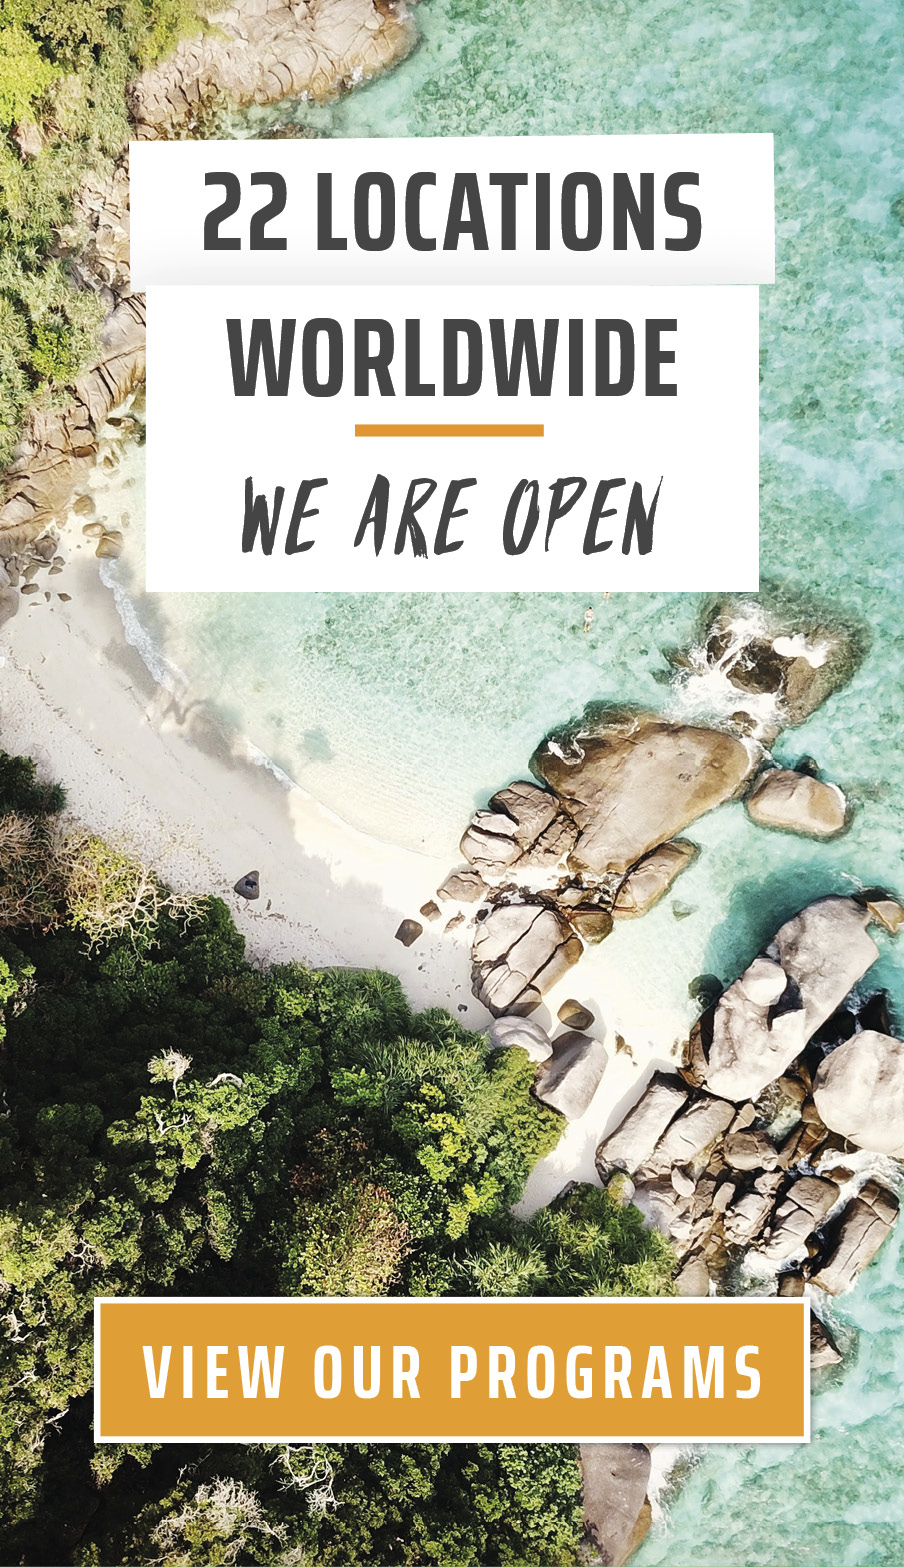 We are open - blog